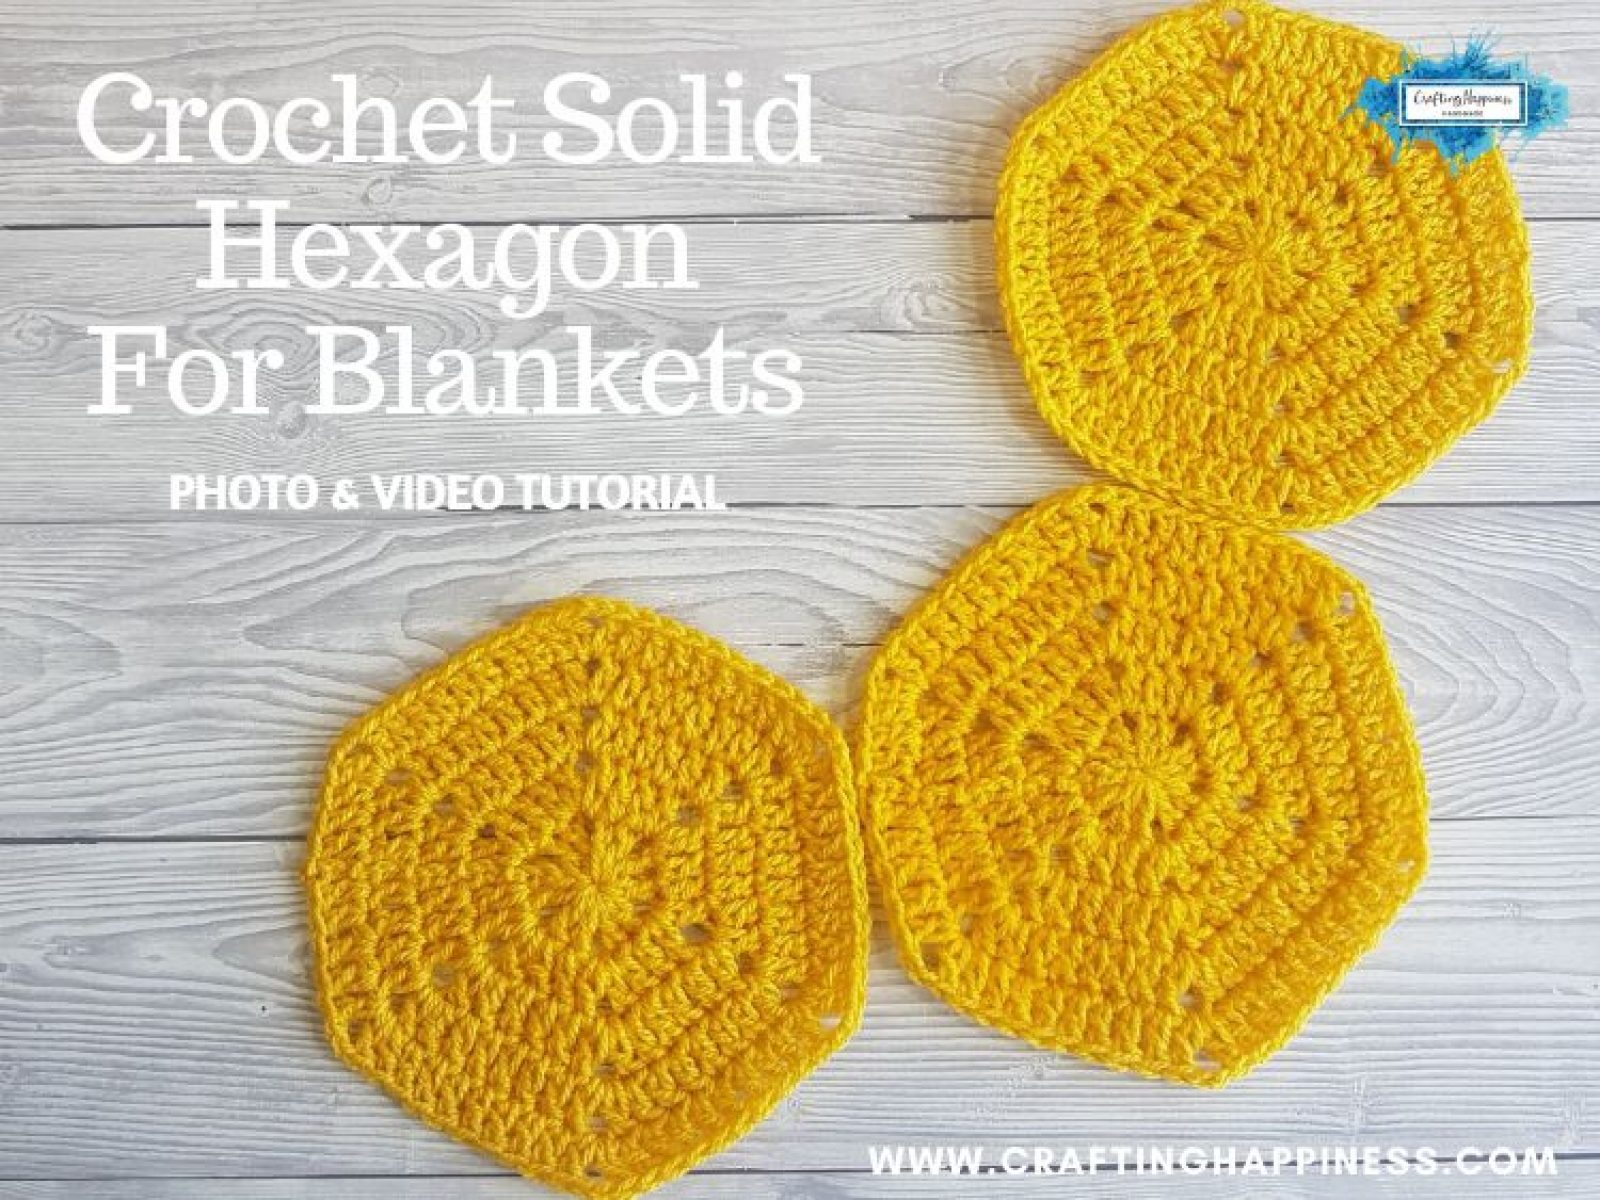 Crochet Solid Hexagon For Blankets - Photo & Video Tutorial